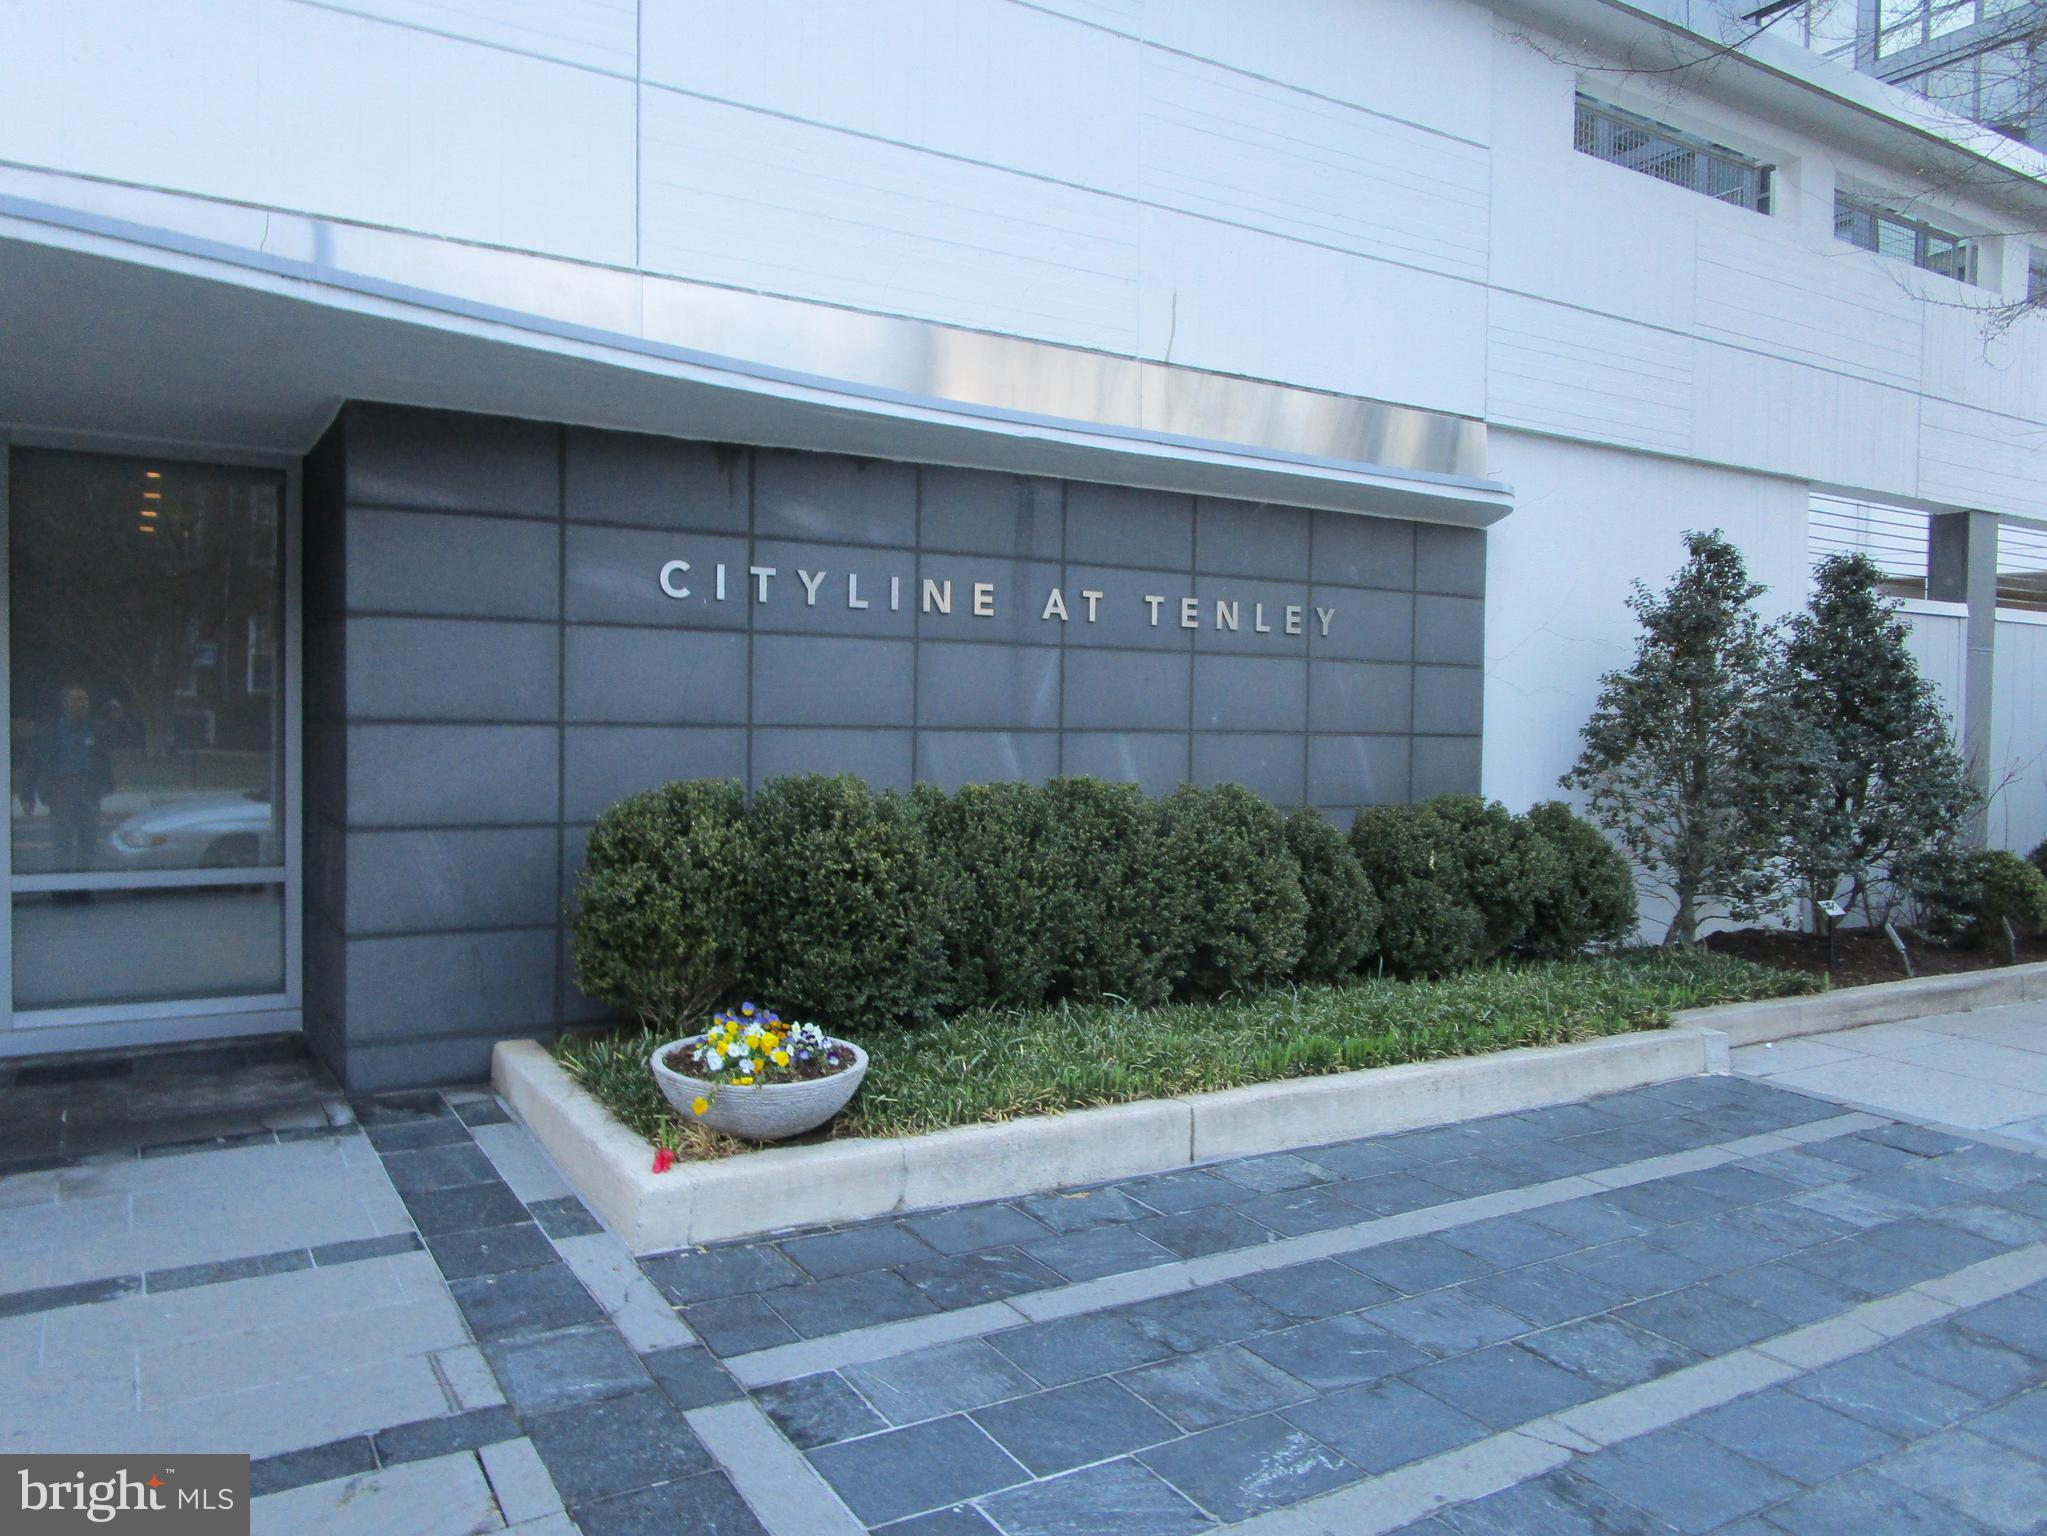 Welcome to Cityline at Tenley! This fabulous condo complex is located at the corner of Wisconsin Ave